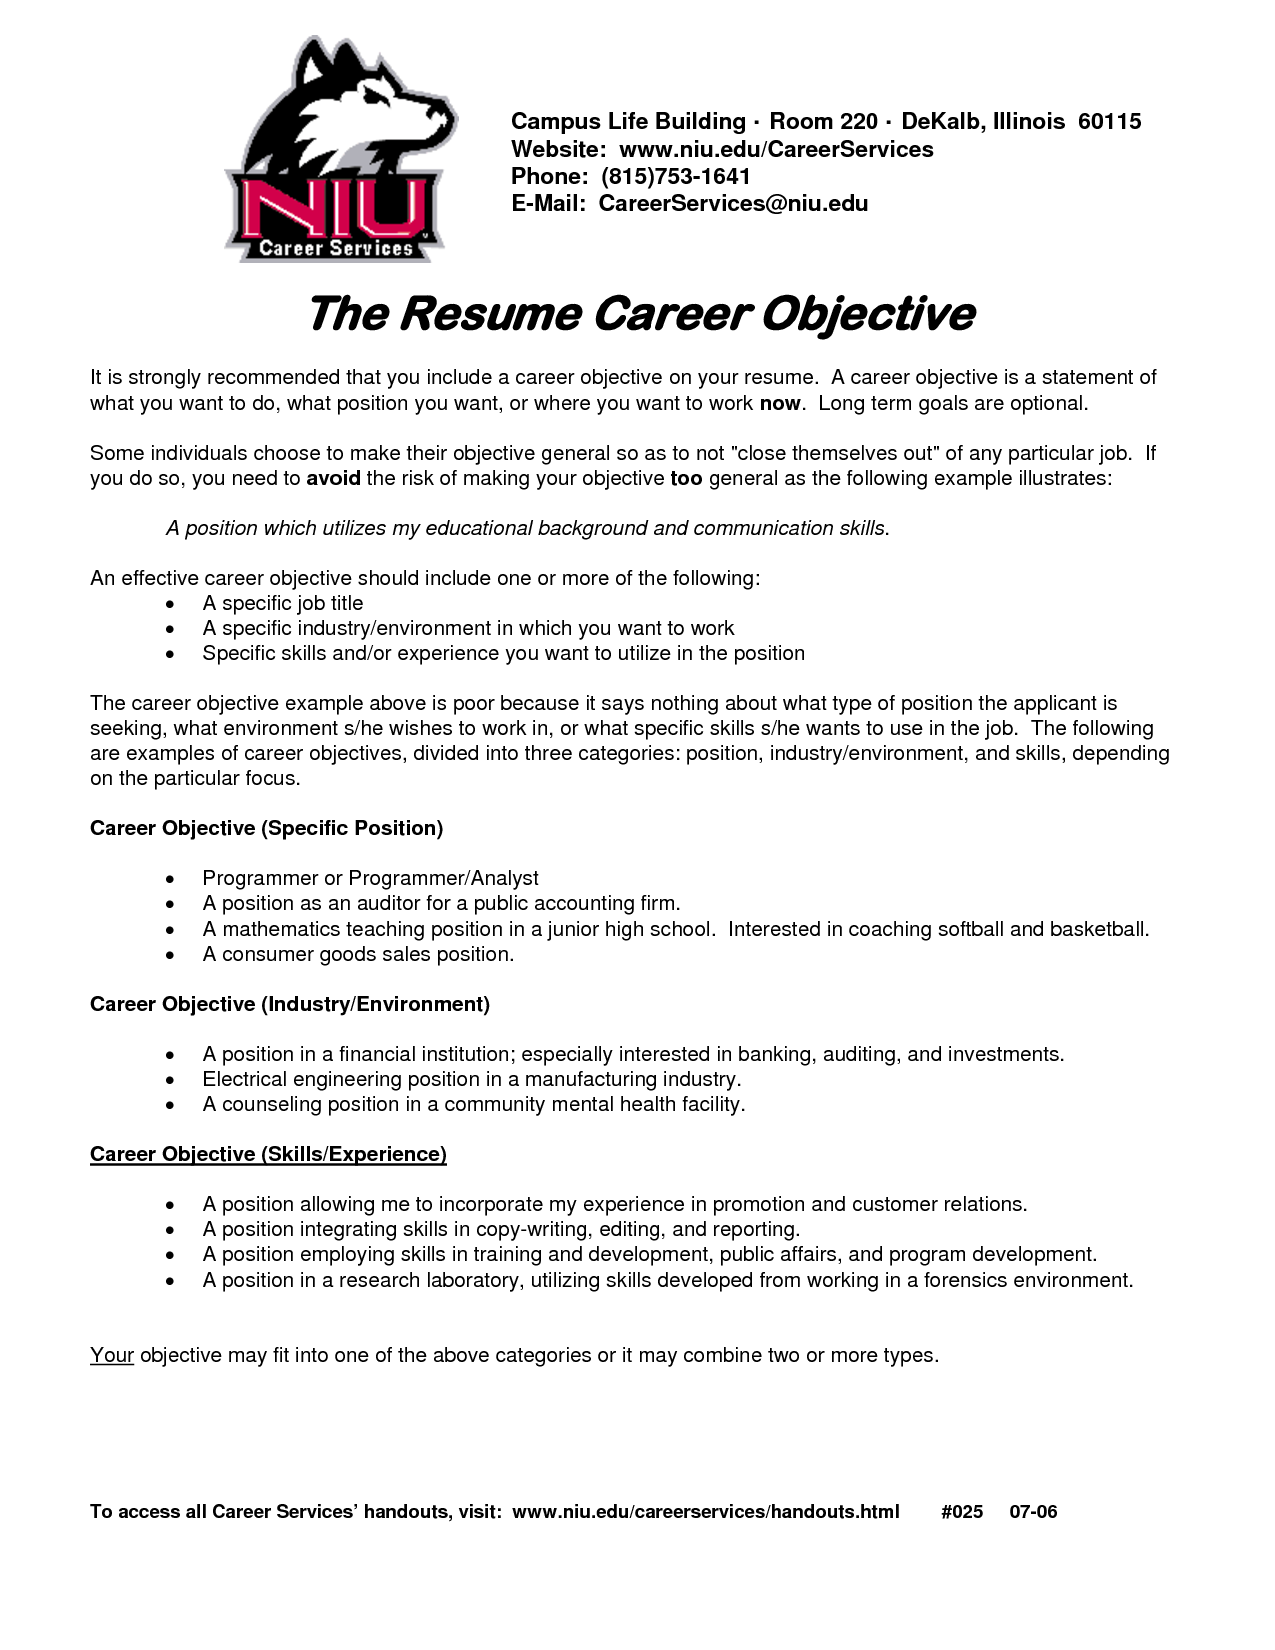 How To Write An Objective On A Resume Httpswwwgooglesearchqobjective Resume  Resume